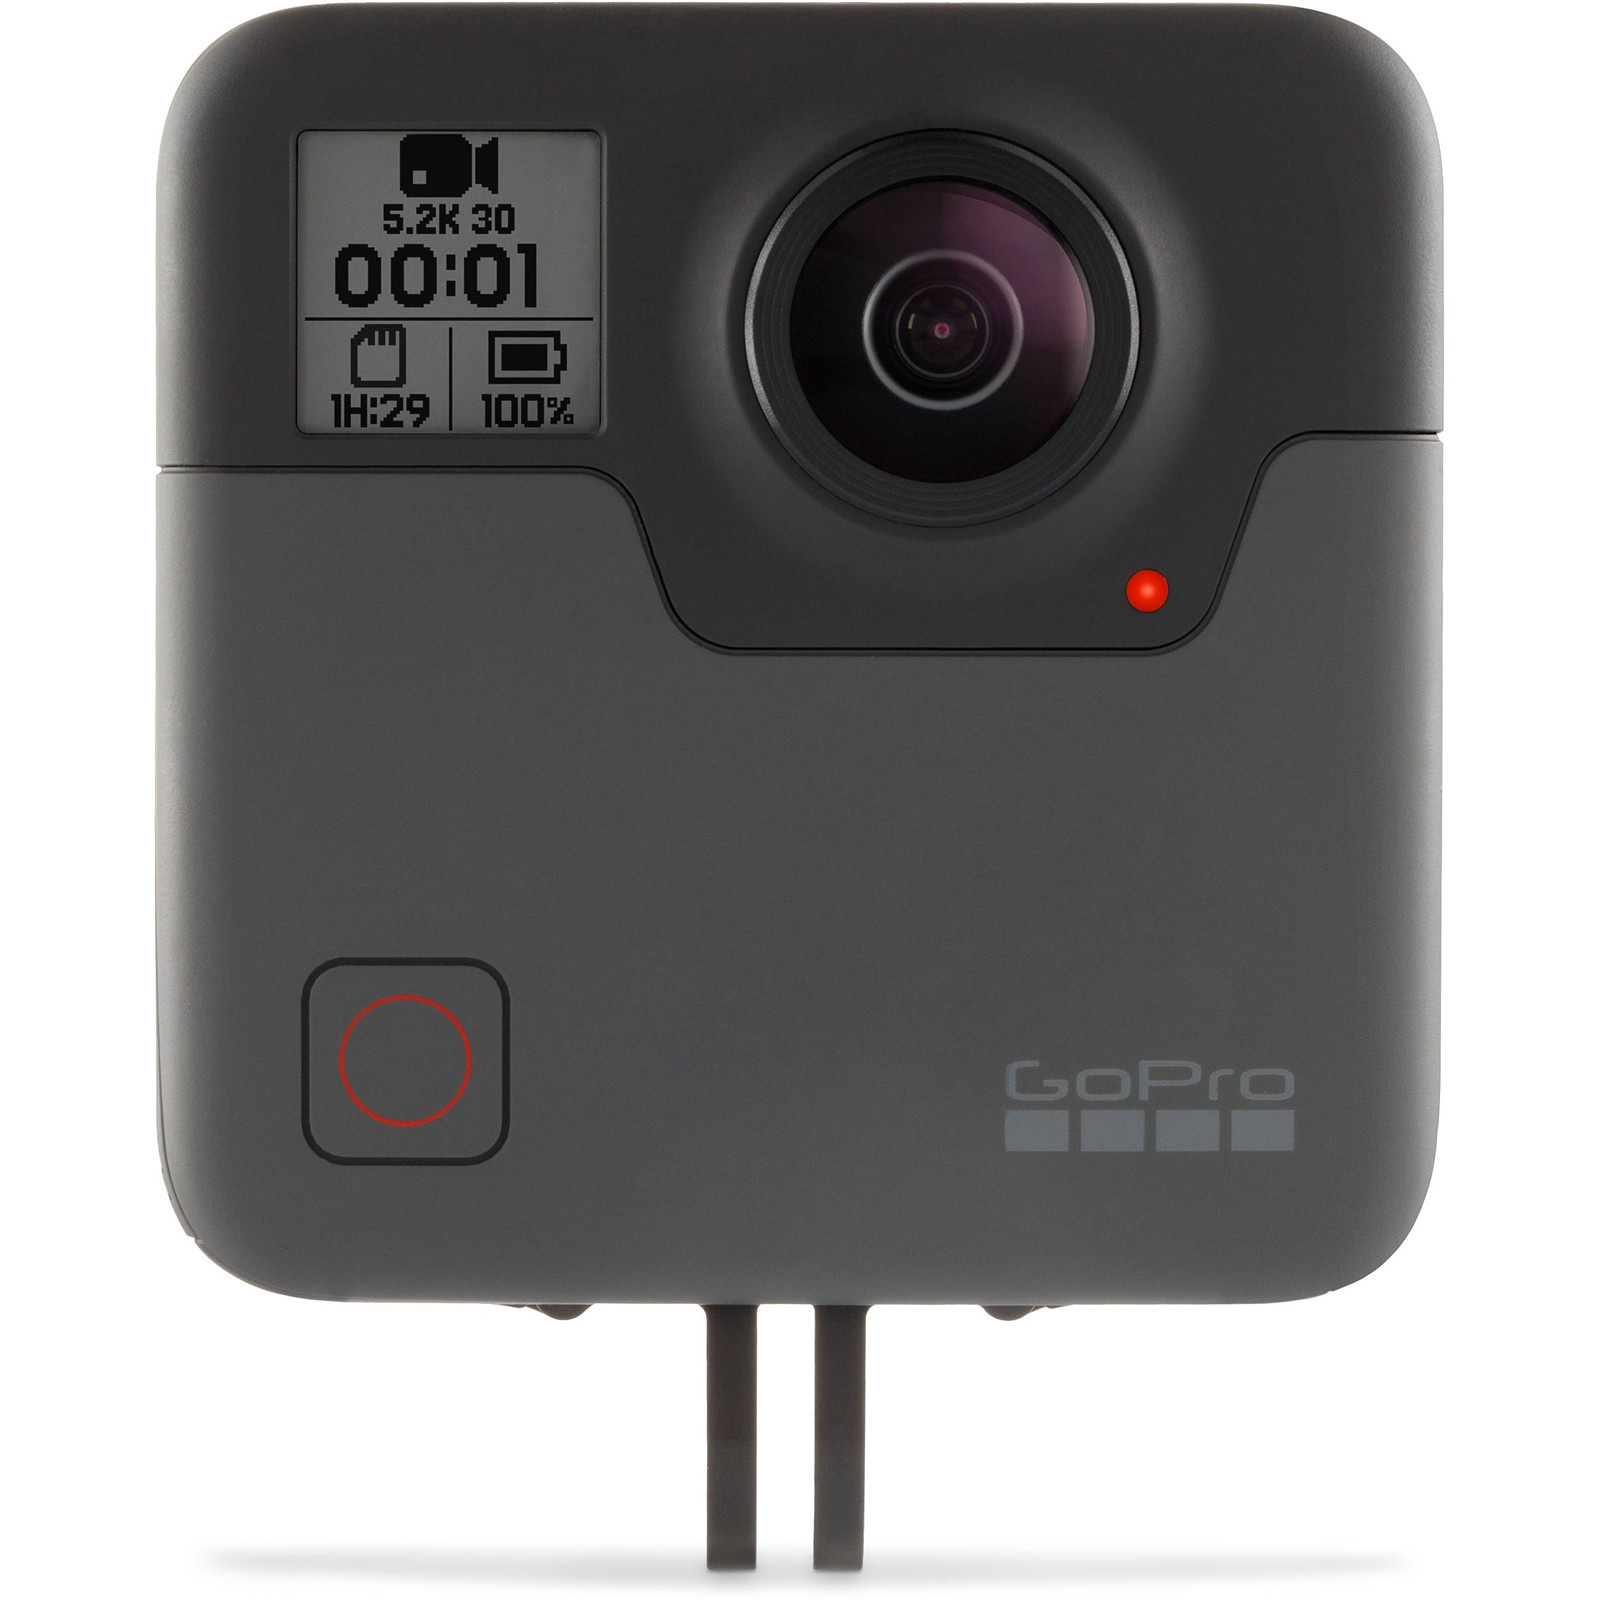 Buy the GoPro Fusion 360-Degree Digital Camera,Water-resistant up to